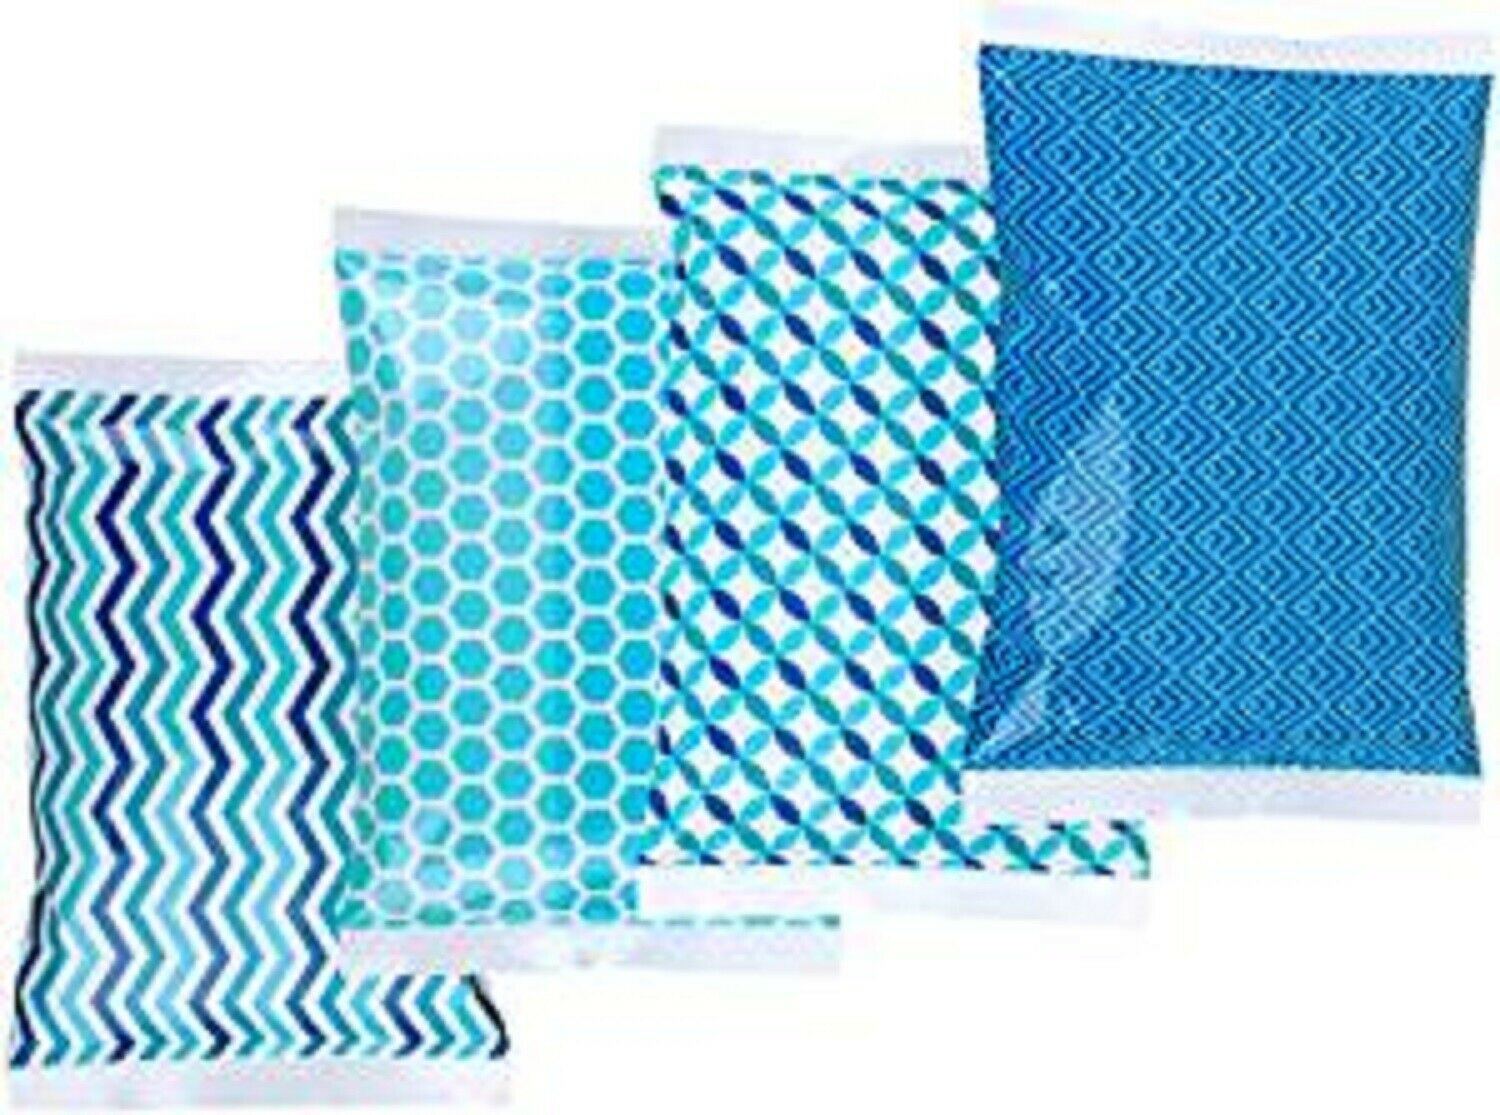 4 Reusable THRIVE Ice Packs for Lunch Boxes - Keeps Food Col